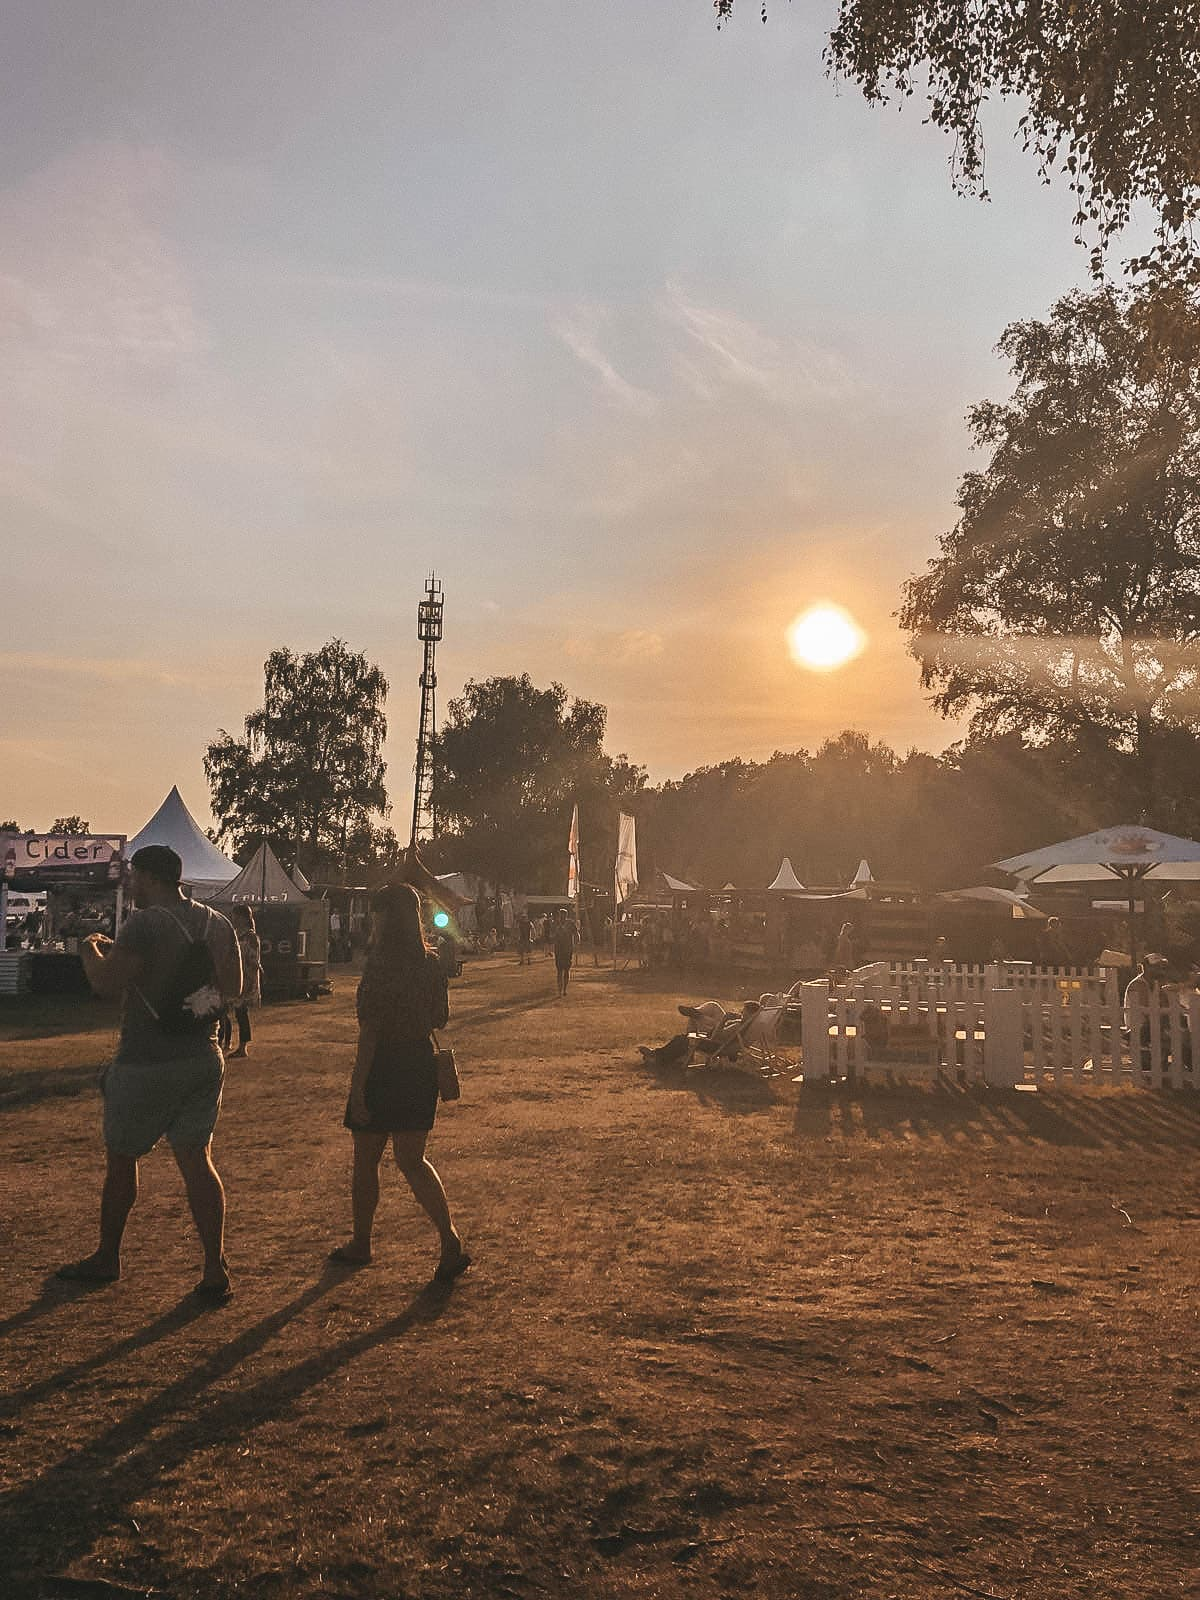 a summers tale festival sunset